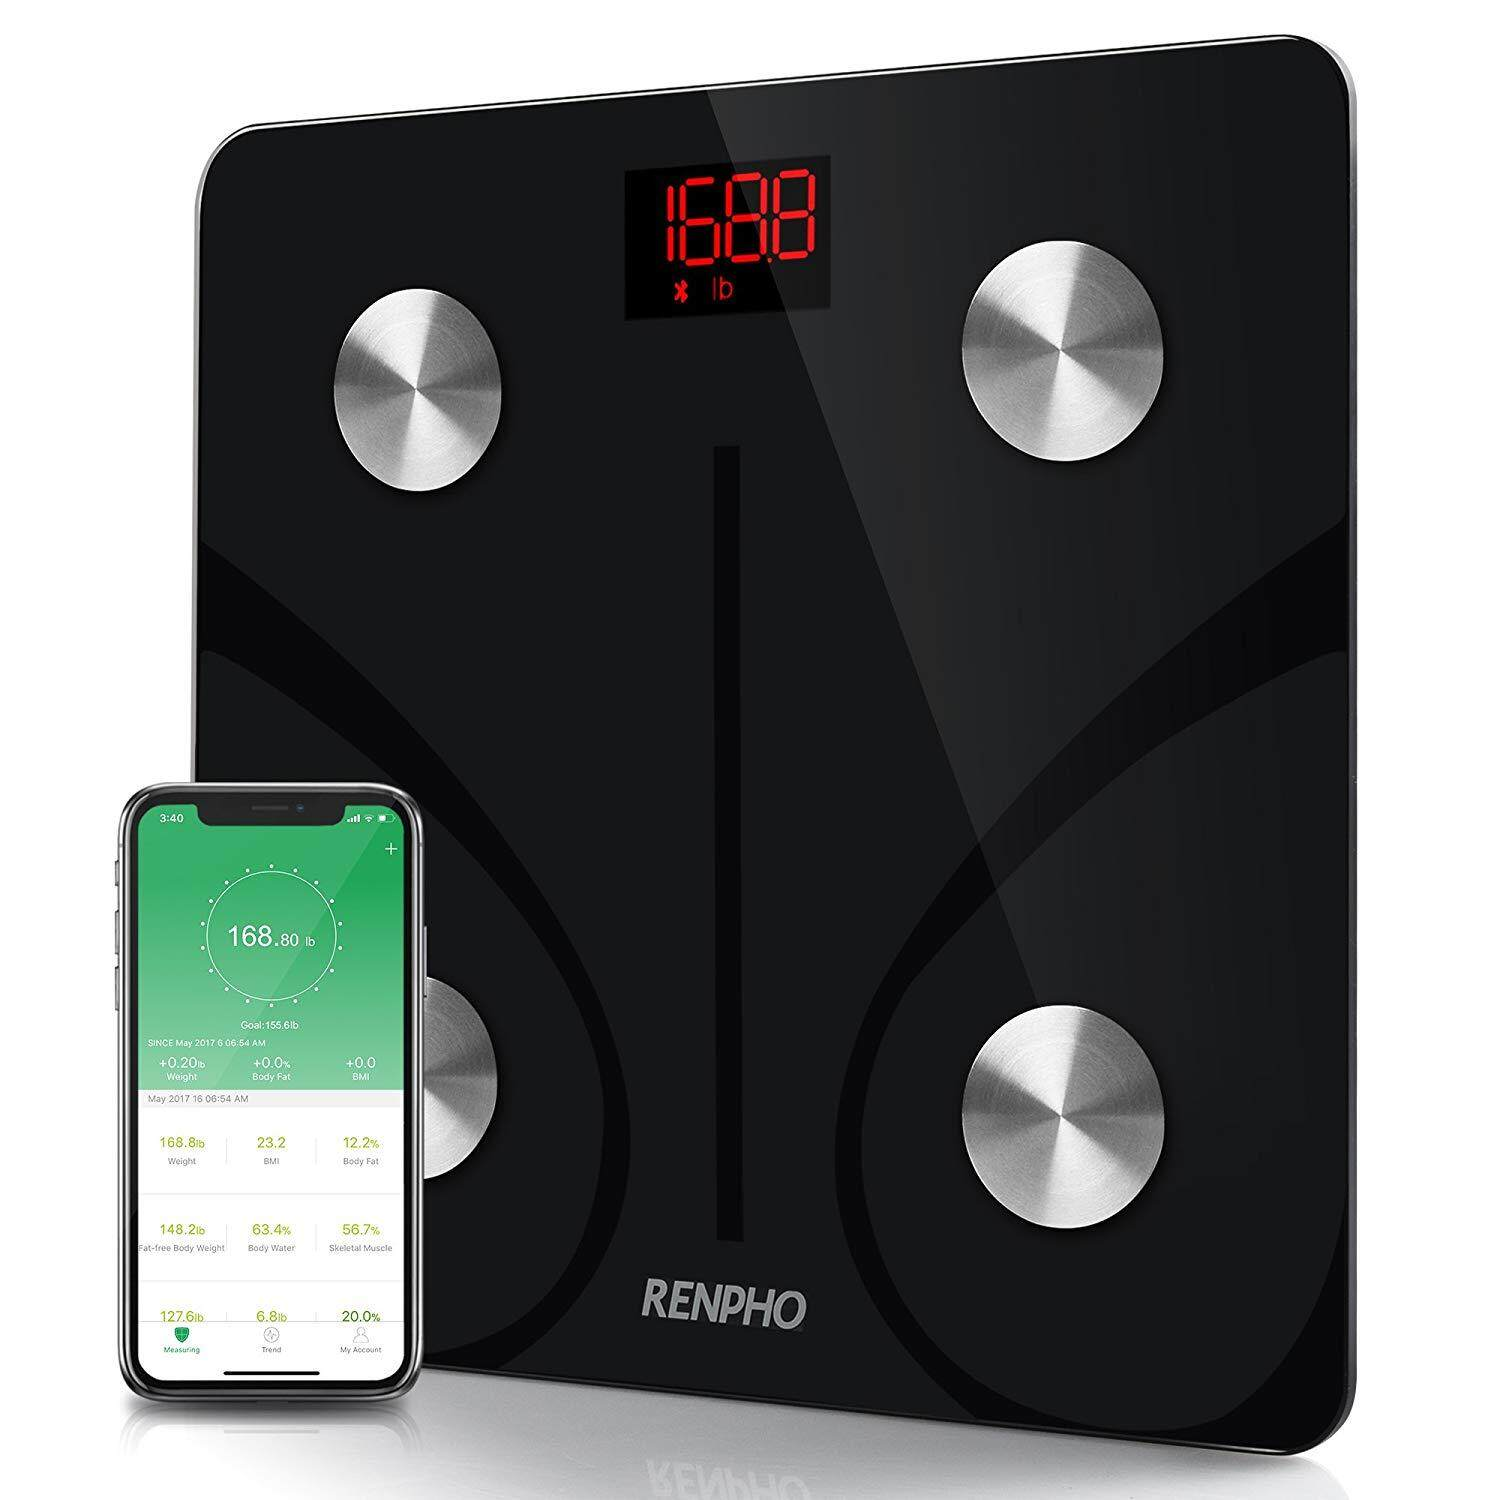 RENPHO Bluetooth Body Fat Scale - FDA Approved - Smart BMI Scale Digital Bathroom Wireless Weight Scale, Body Composition Analyzer with Smartphone App, 396 lbs